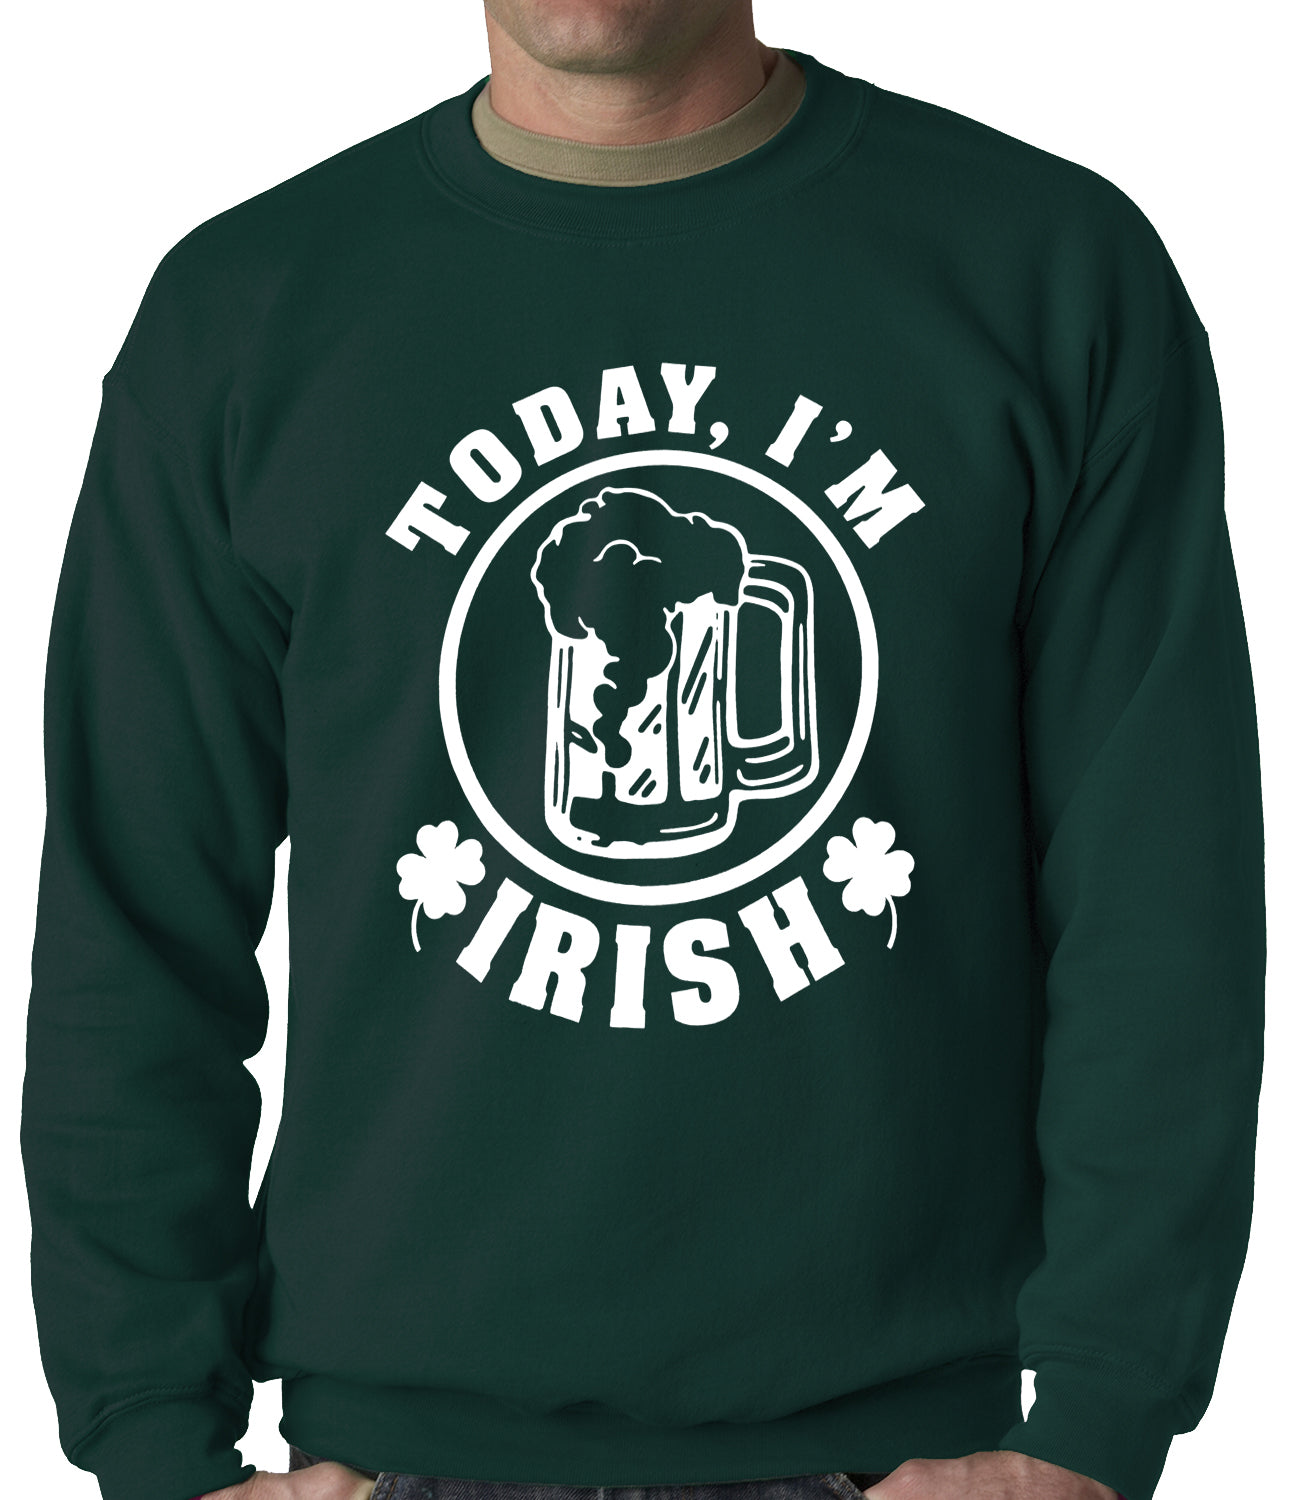 Today I'm Irish St. Patrick's Day Adult Crewneck